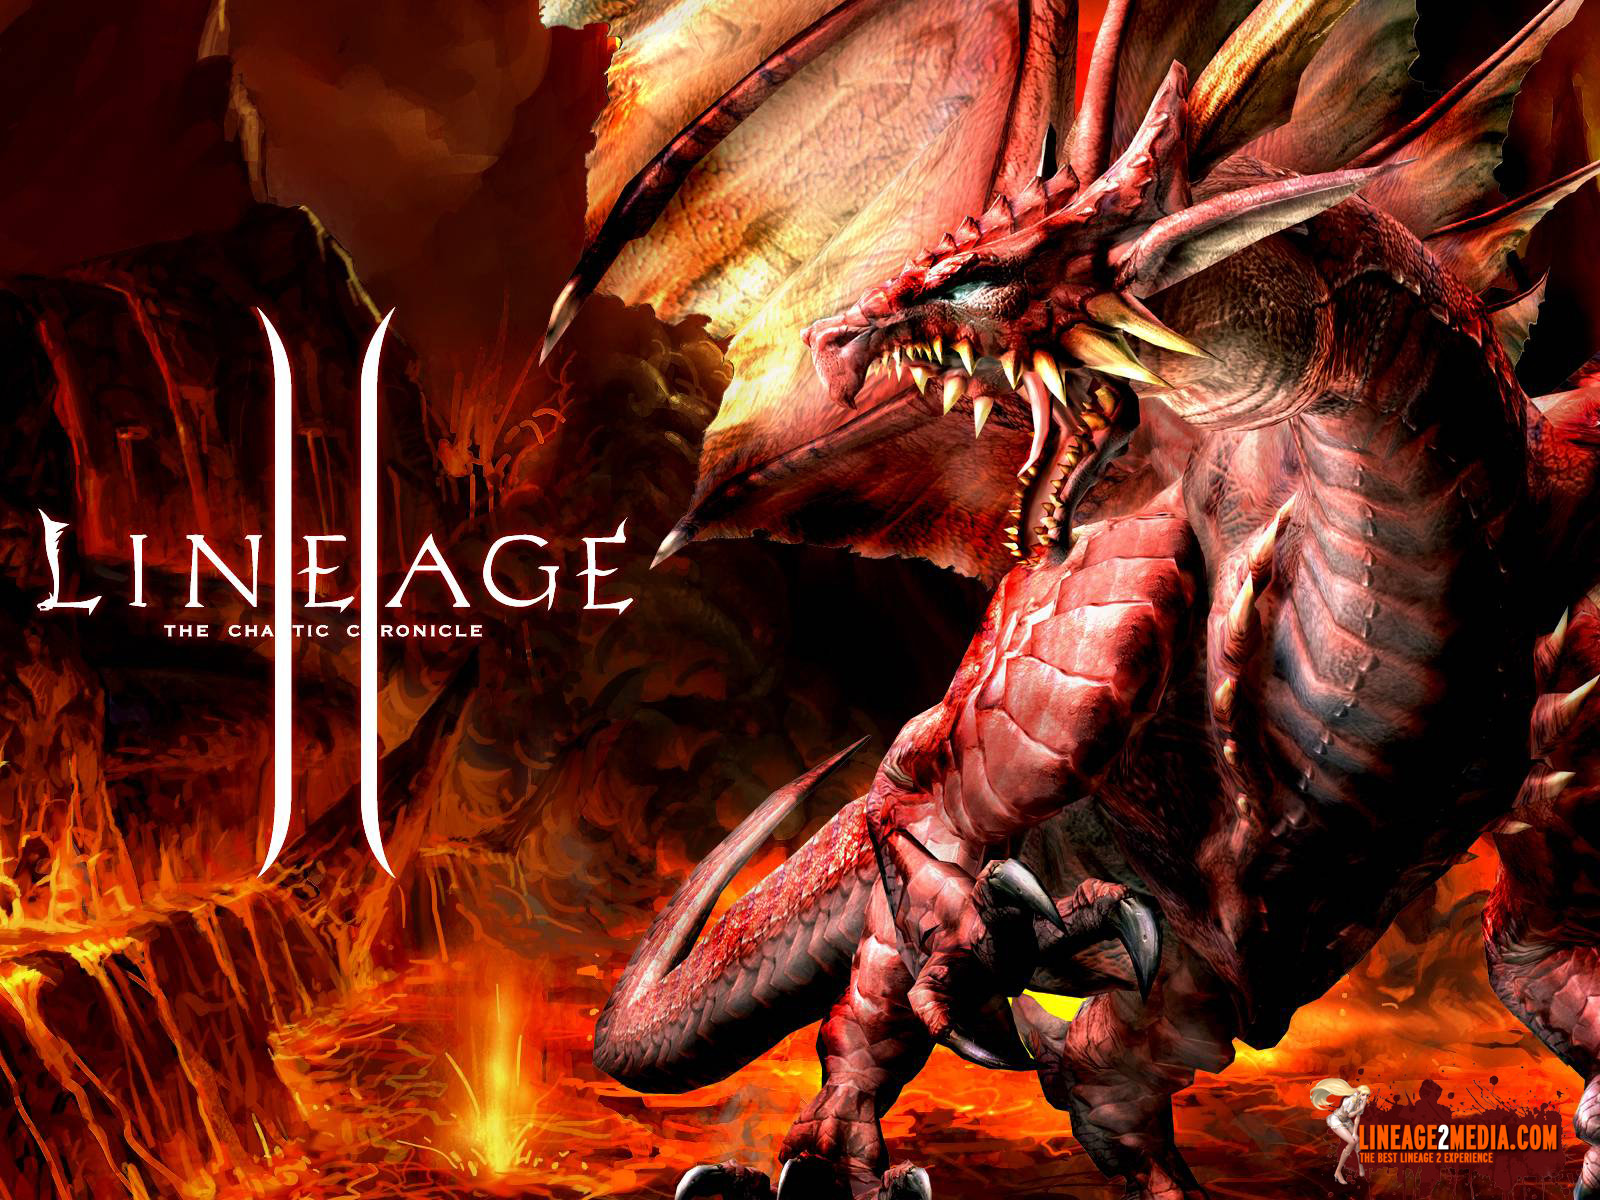 http://www.lineage2media.com/pictures/lineage2wallpapervalakaea0.jpg